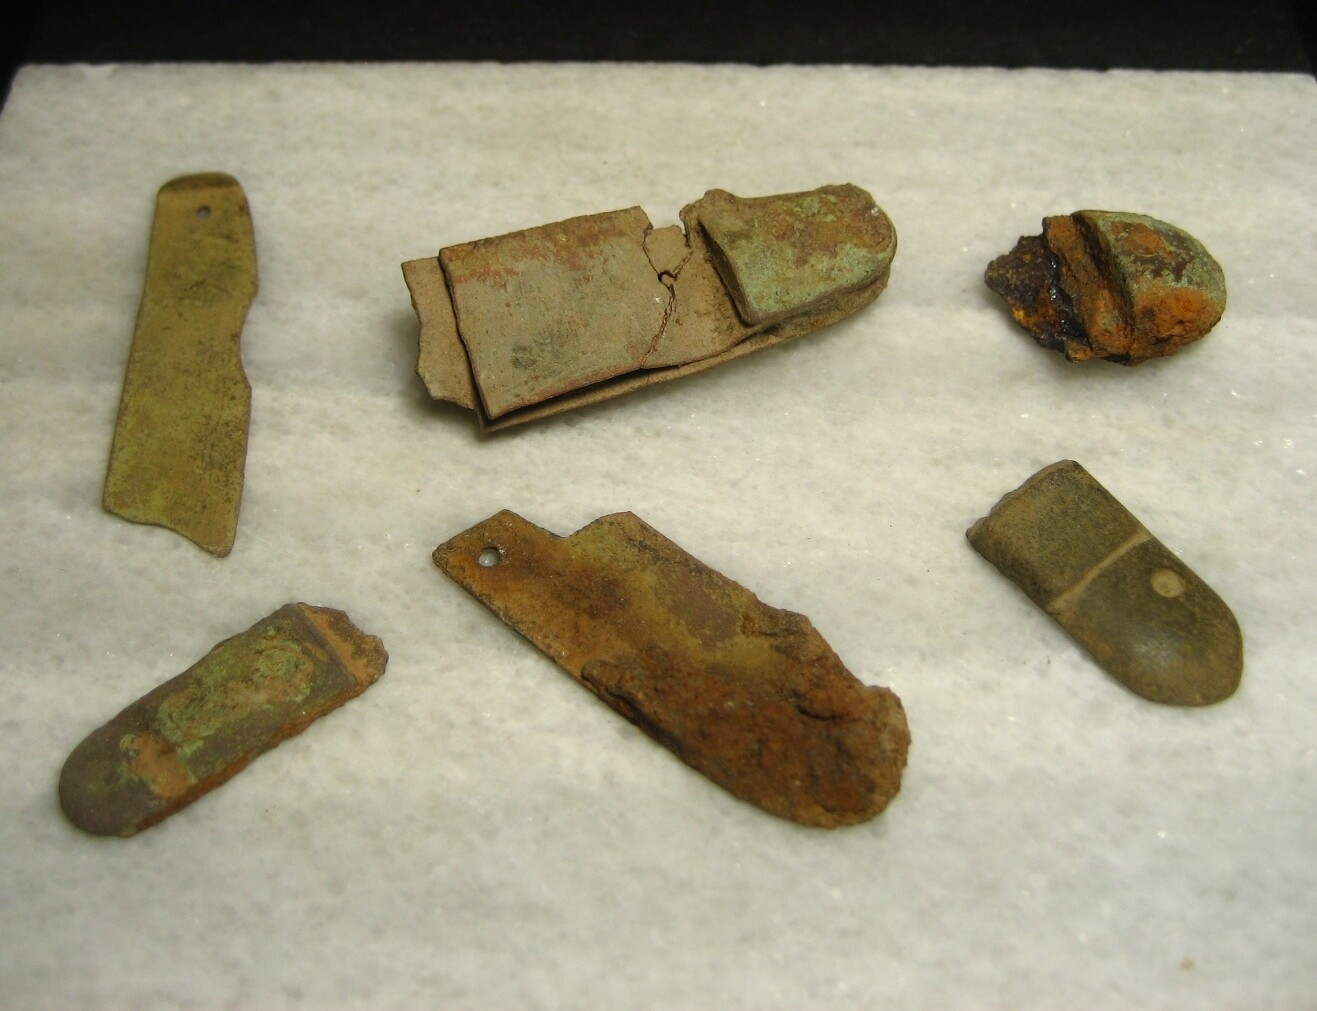 JUST ADDED ON 9/12 - THE BATTLE OF GETTYSBURG / AREA BEHIND THE ROUND TOPS - Pieces of Soldier's Pocket Knives